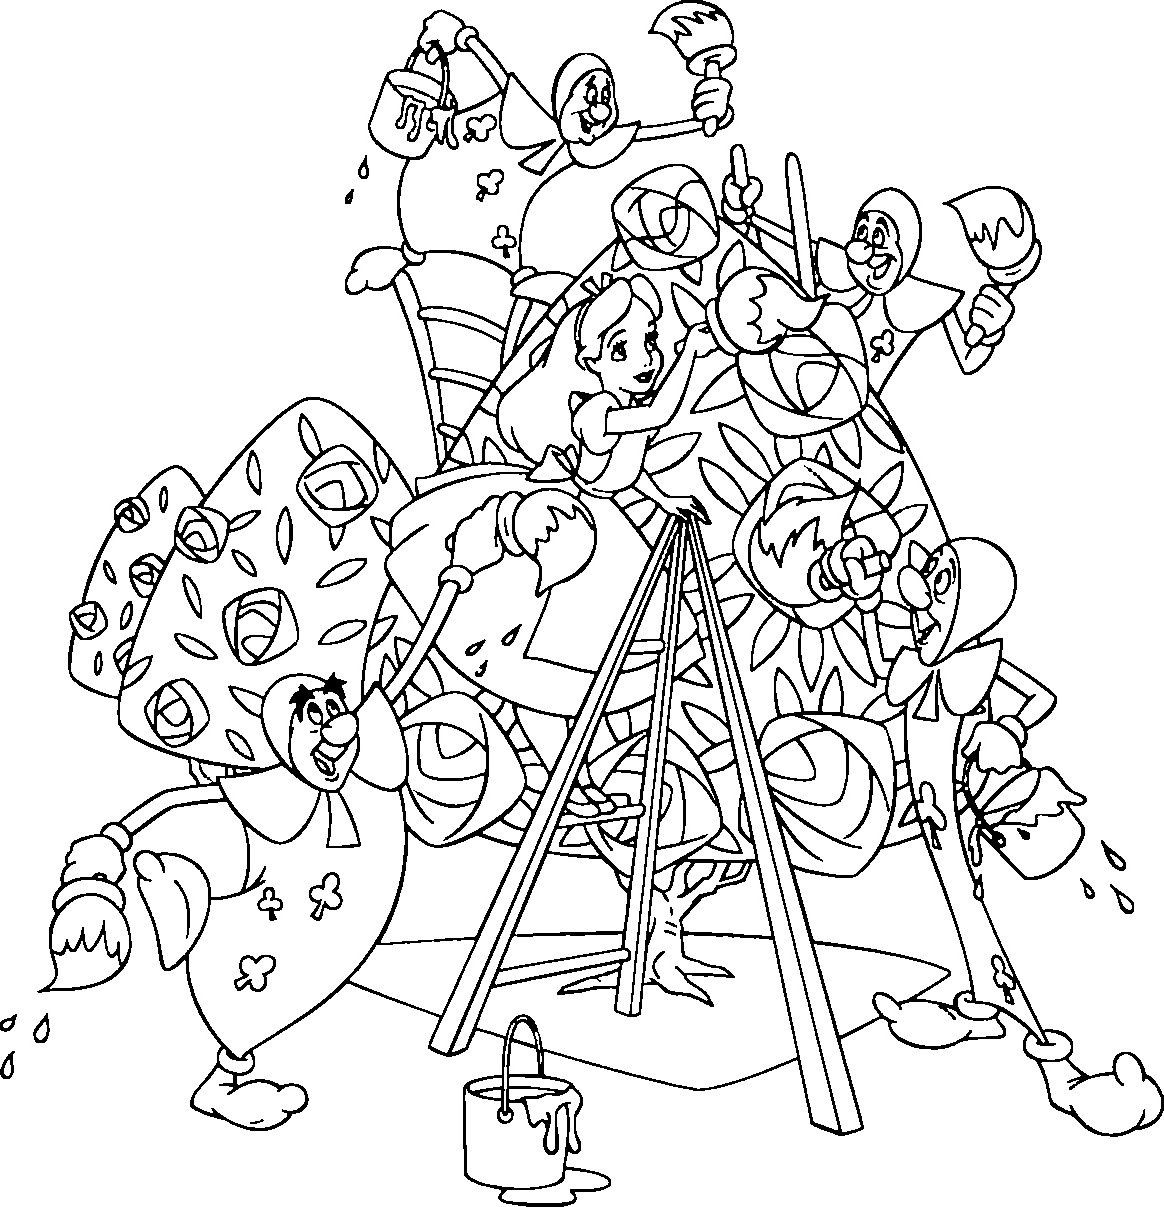 curtain coloring pages Collection-Media Cache Ec0 Pinimg originals 2b 06 0d for Snail Coloring Page 6-c